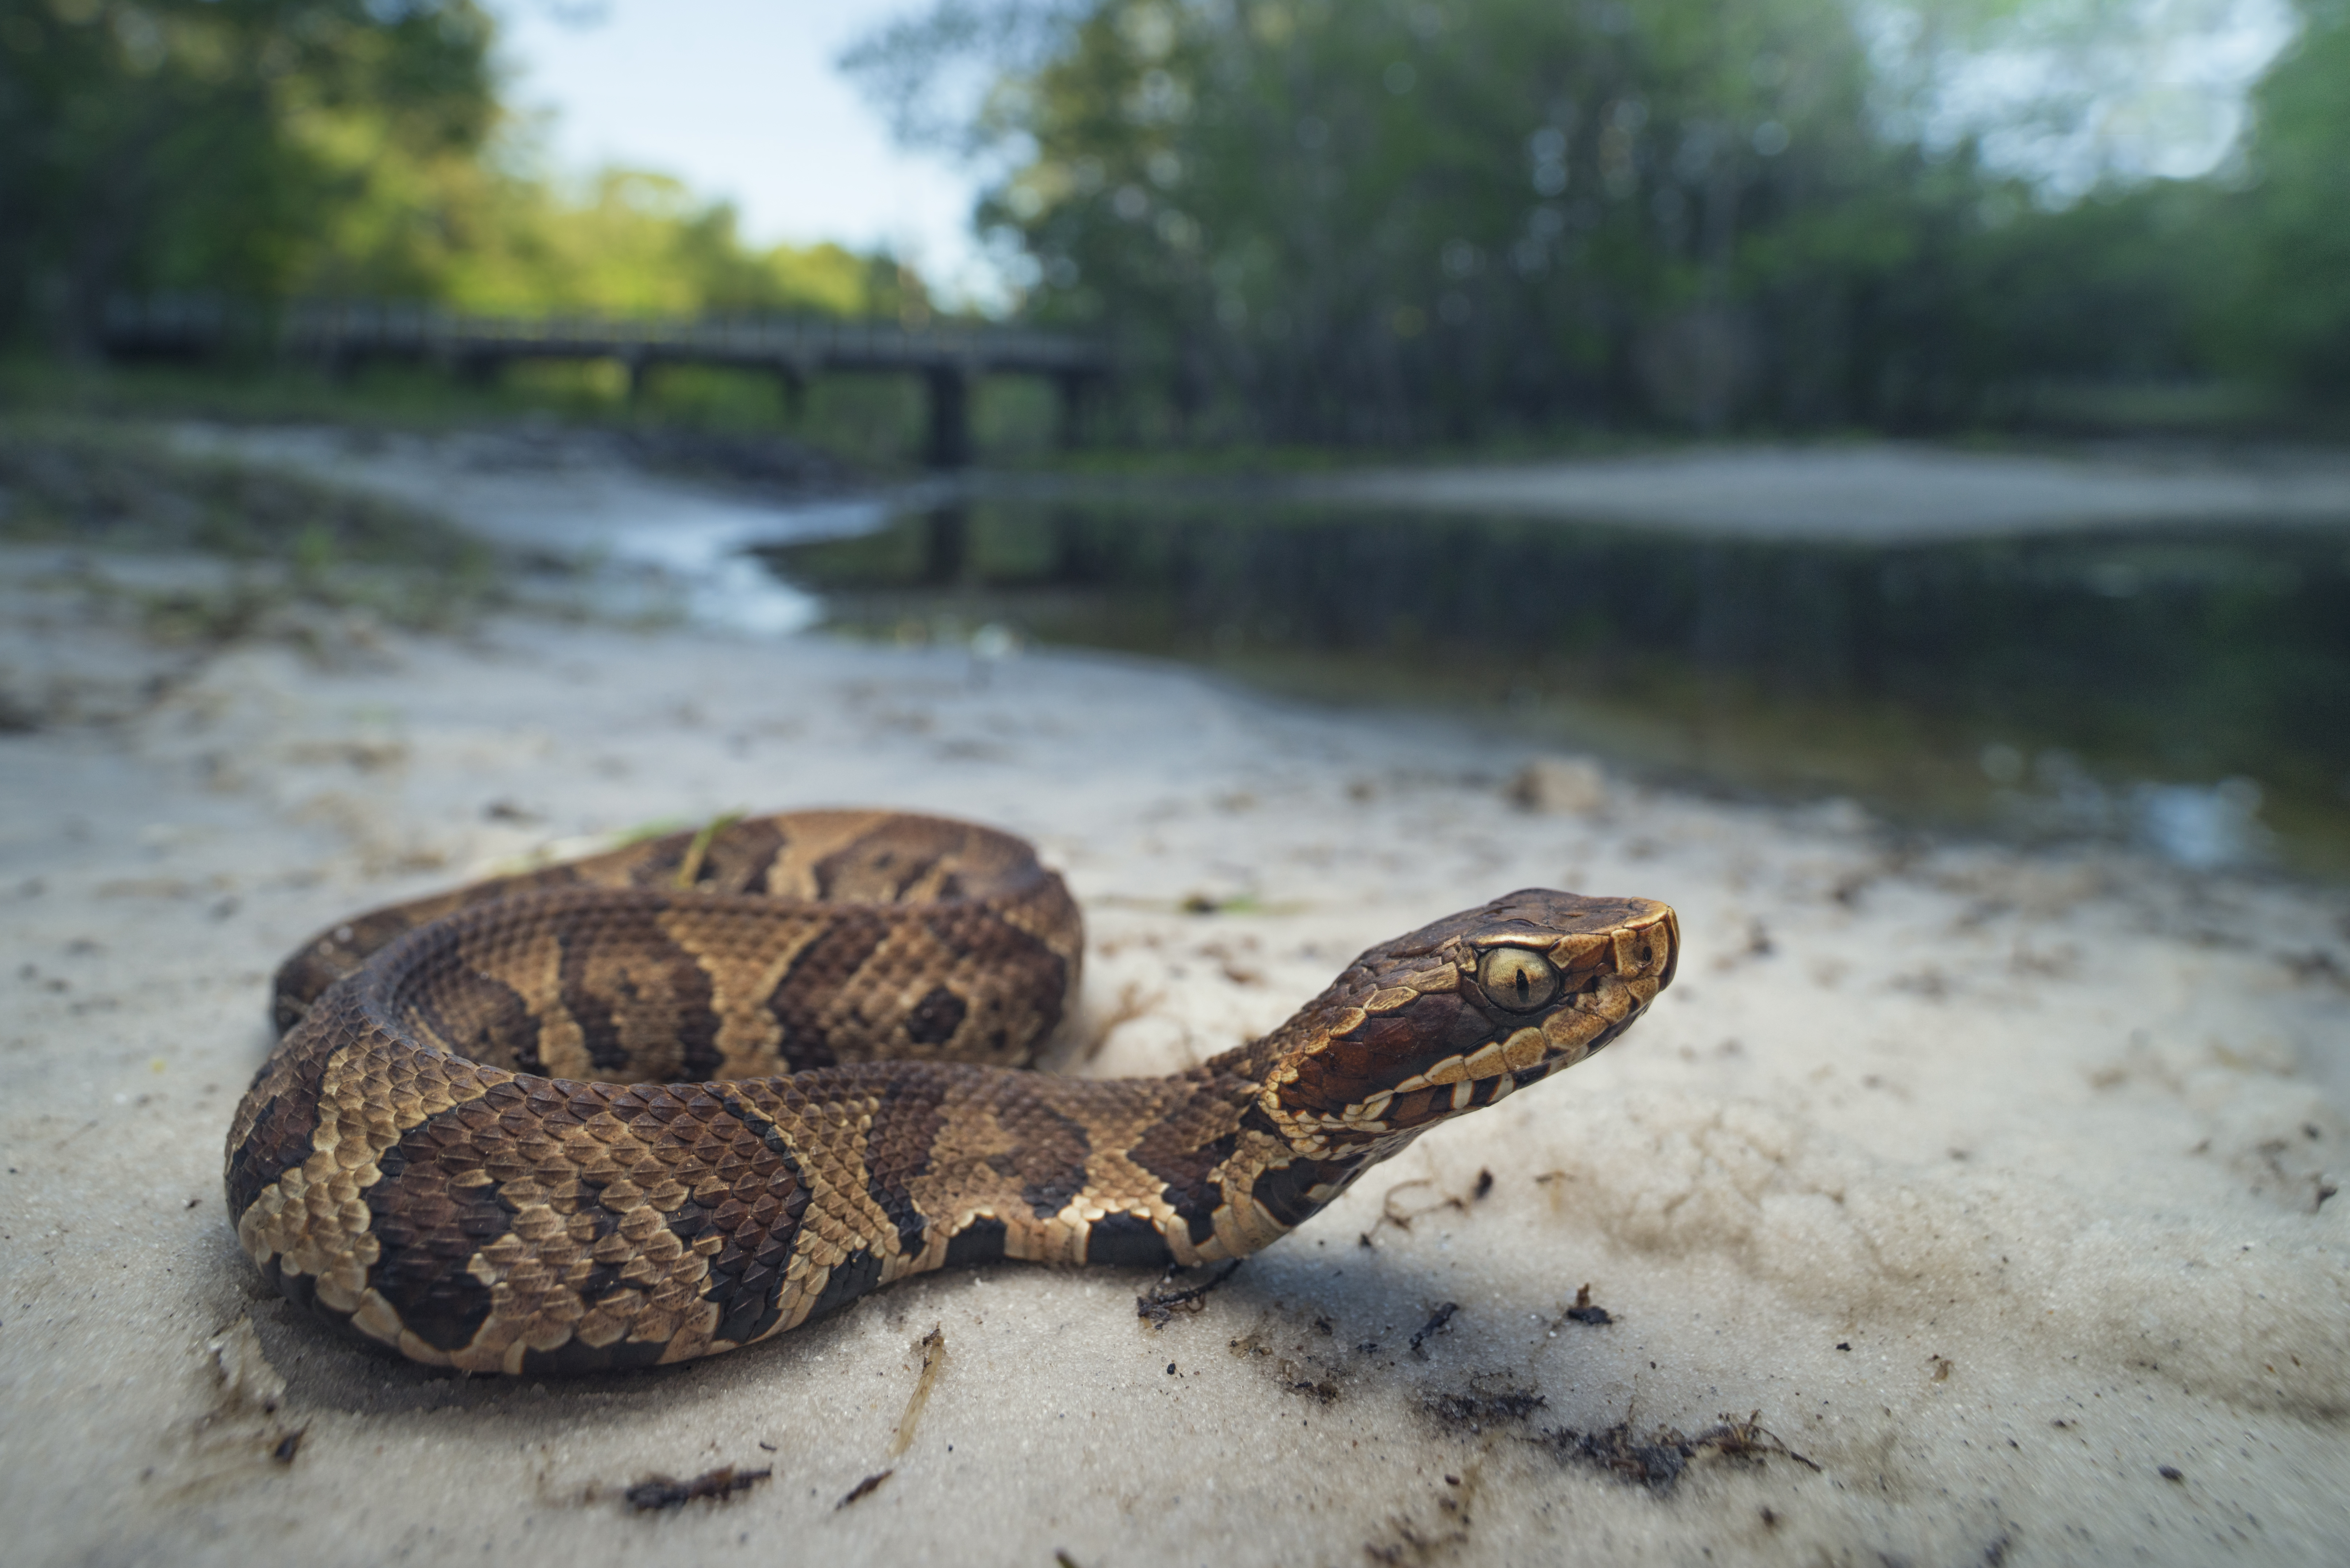 How to Identify a Water Moccasin